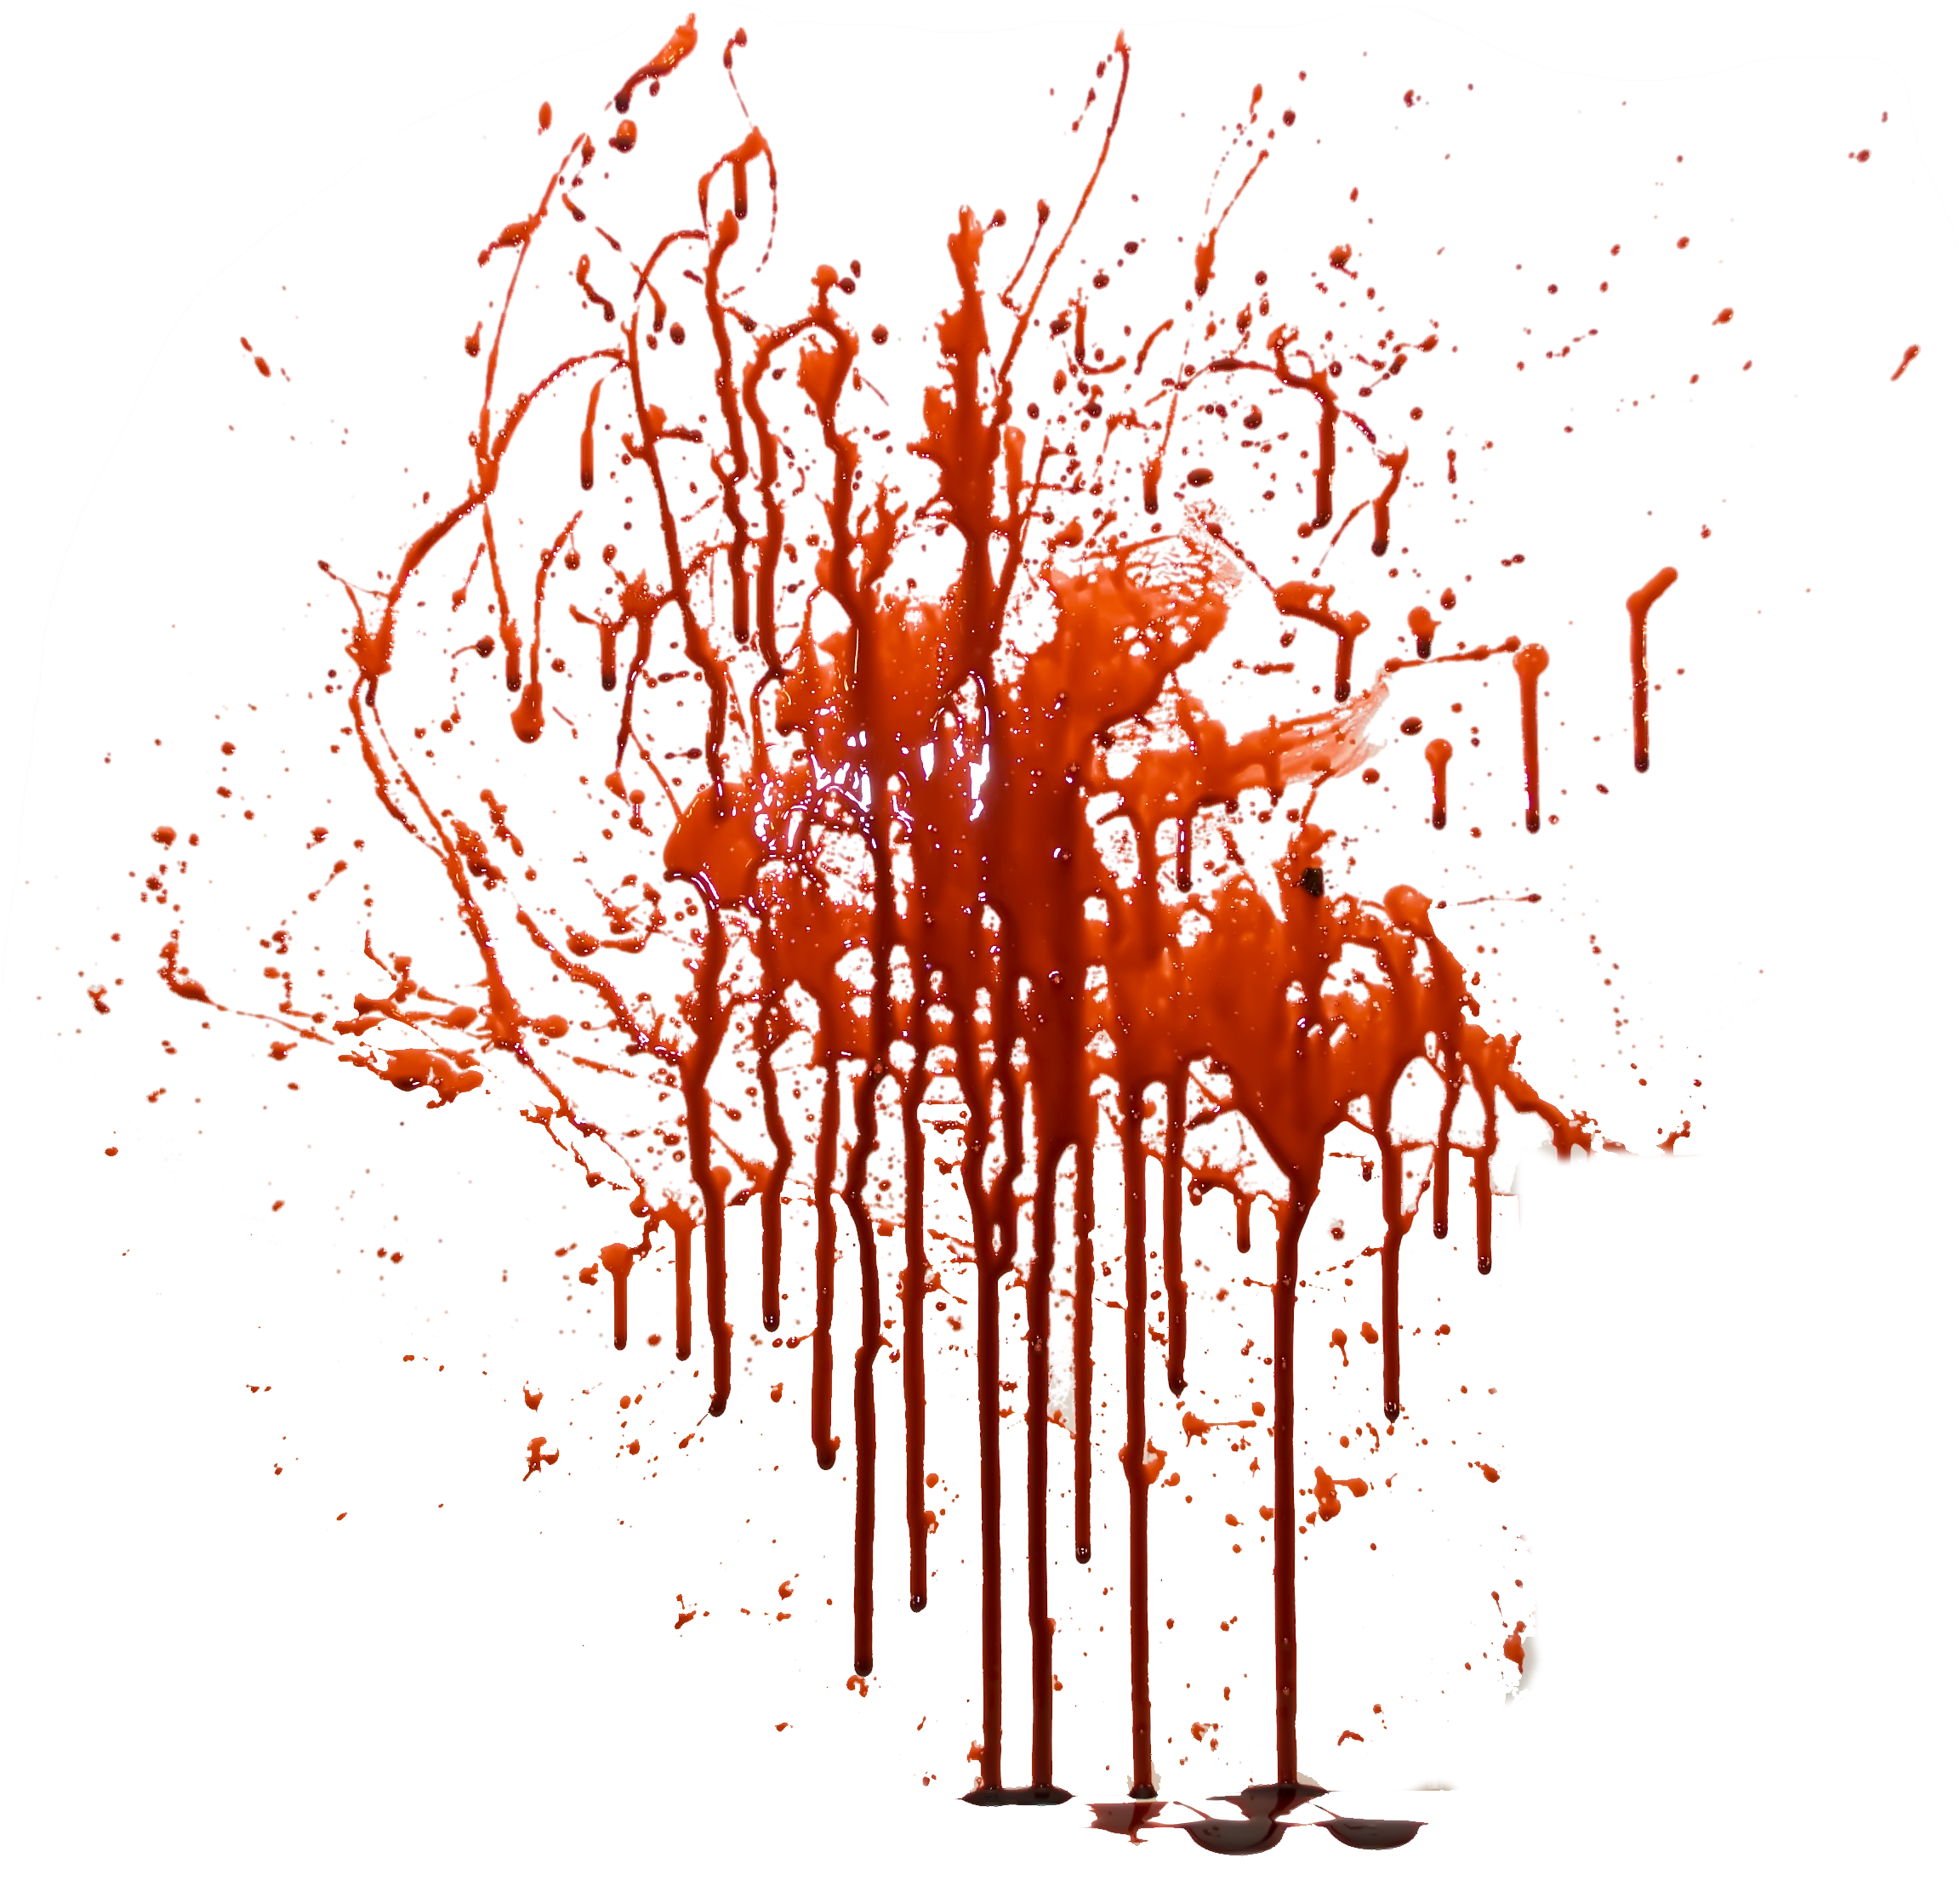 Blood splatter texture png. Clipart images gallery for